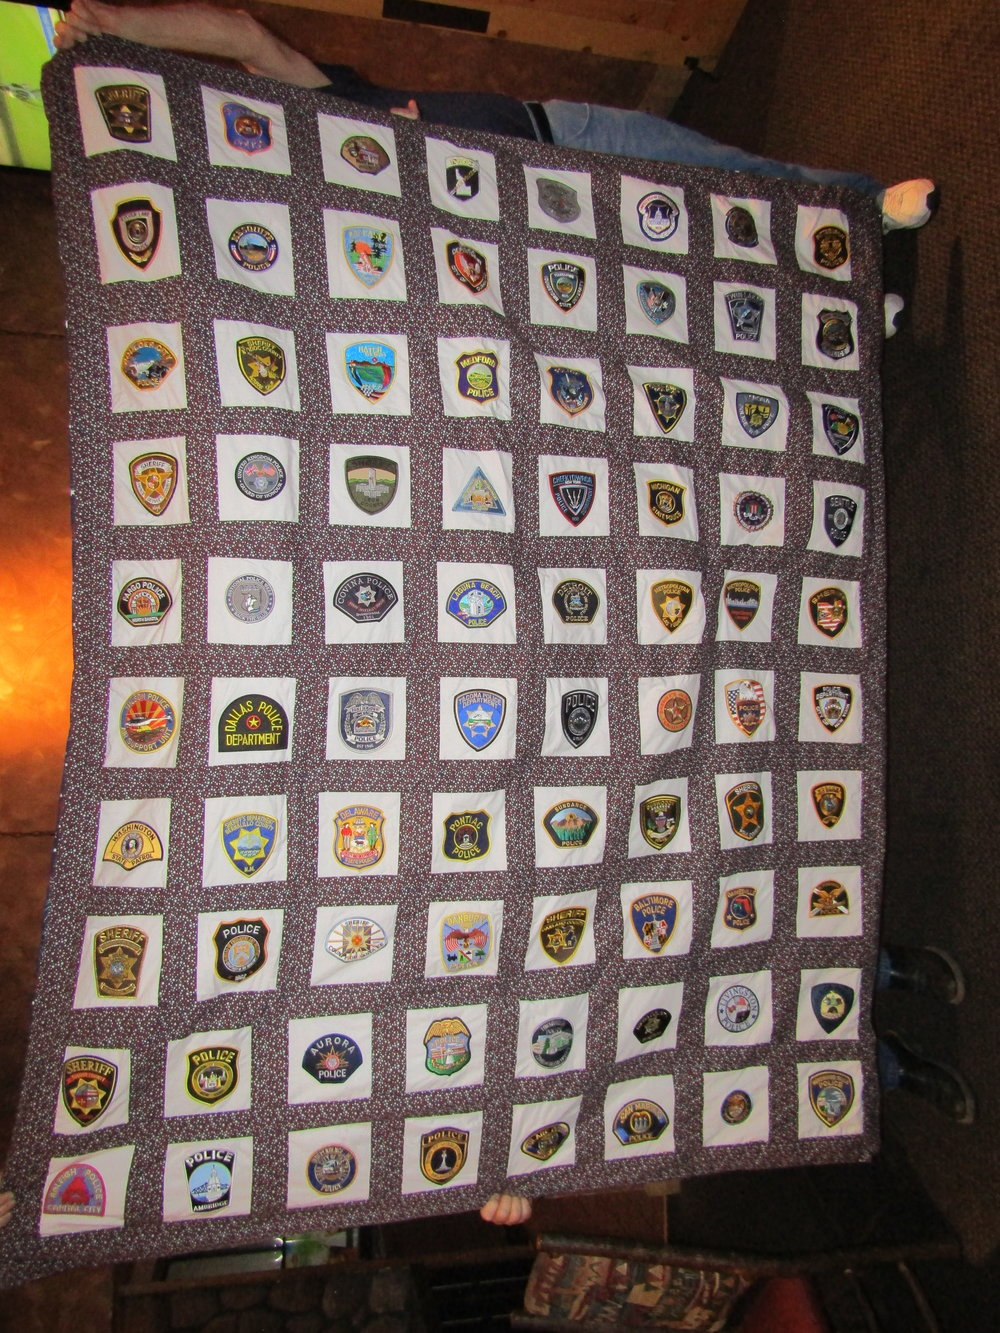 2018 SOUTHERN NEVADA CONCERNS OF POLICE SURVIVORS  POLICE PATCH QUILT----Tickets now available $5 each or 5 for $20  Email snvcops@gmail.com or call 702-875-3359 for tickets.  Drawing will be at the August meeting of SNV C.O.P.S.